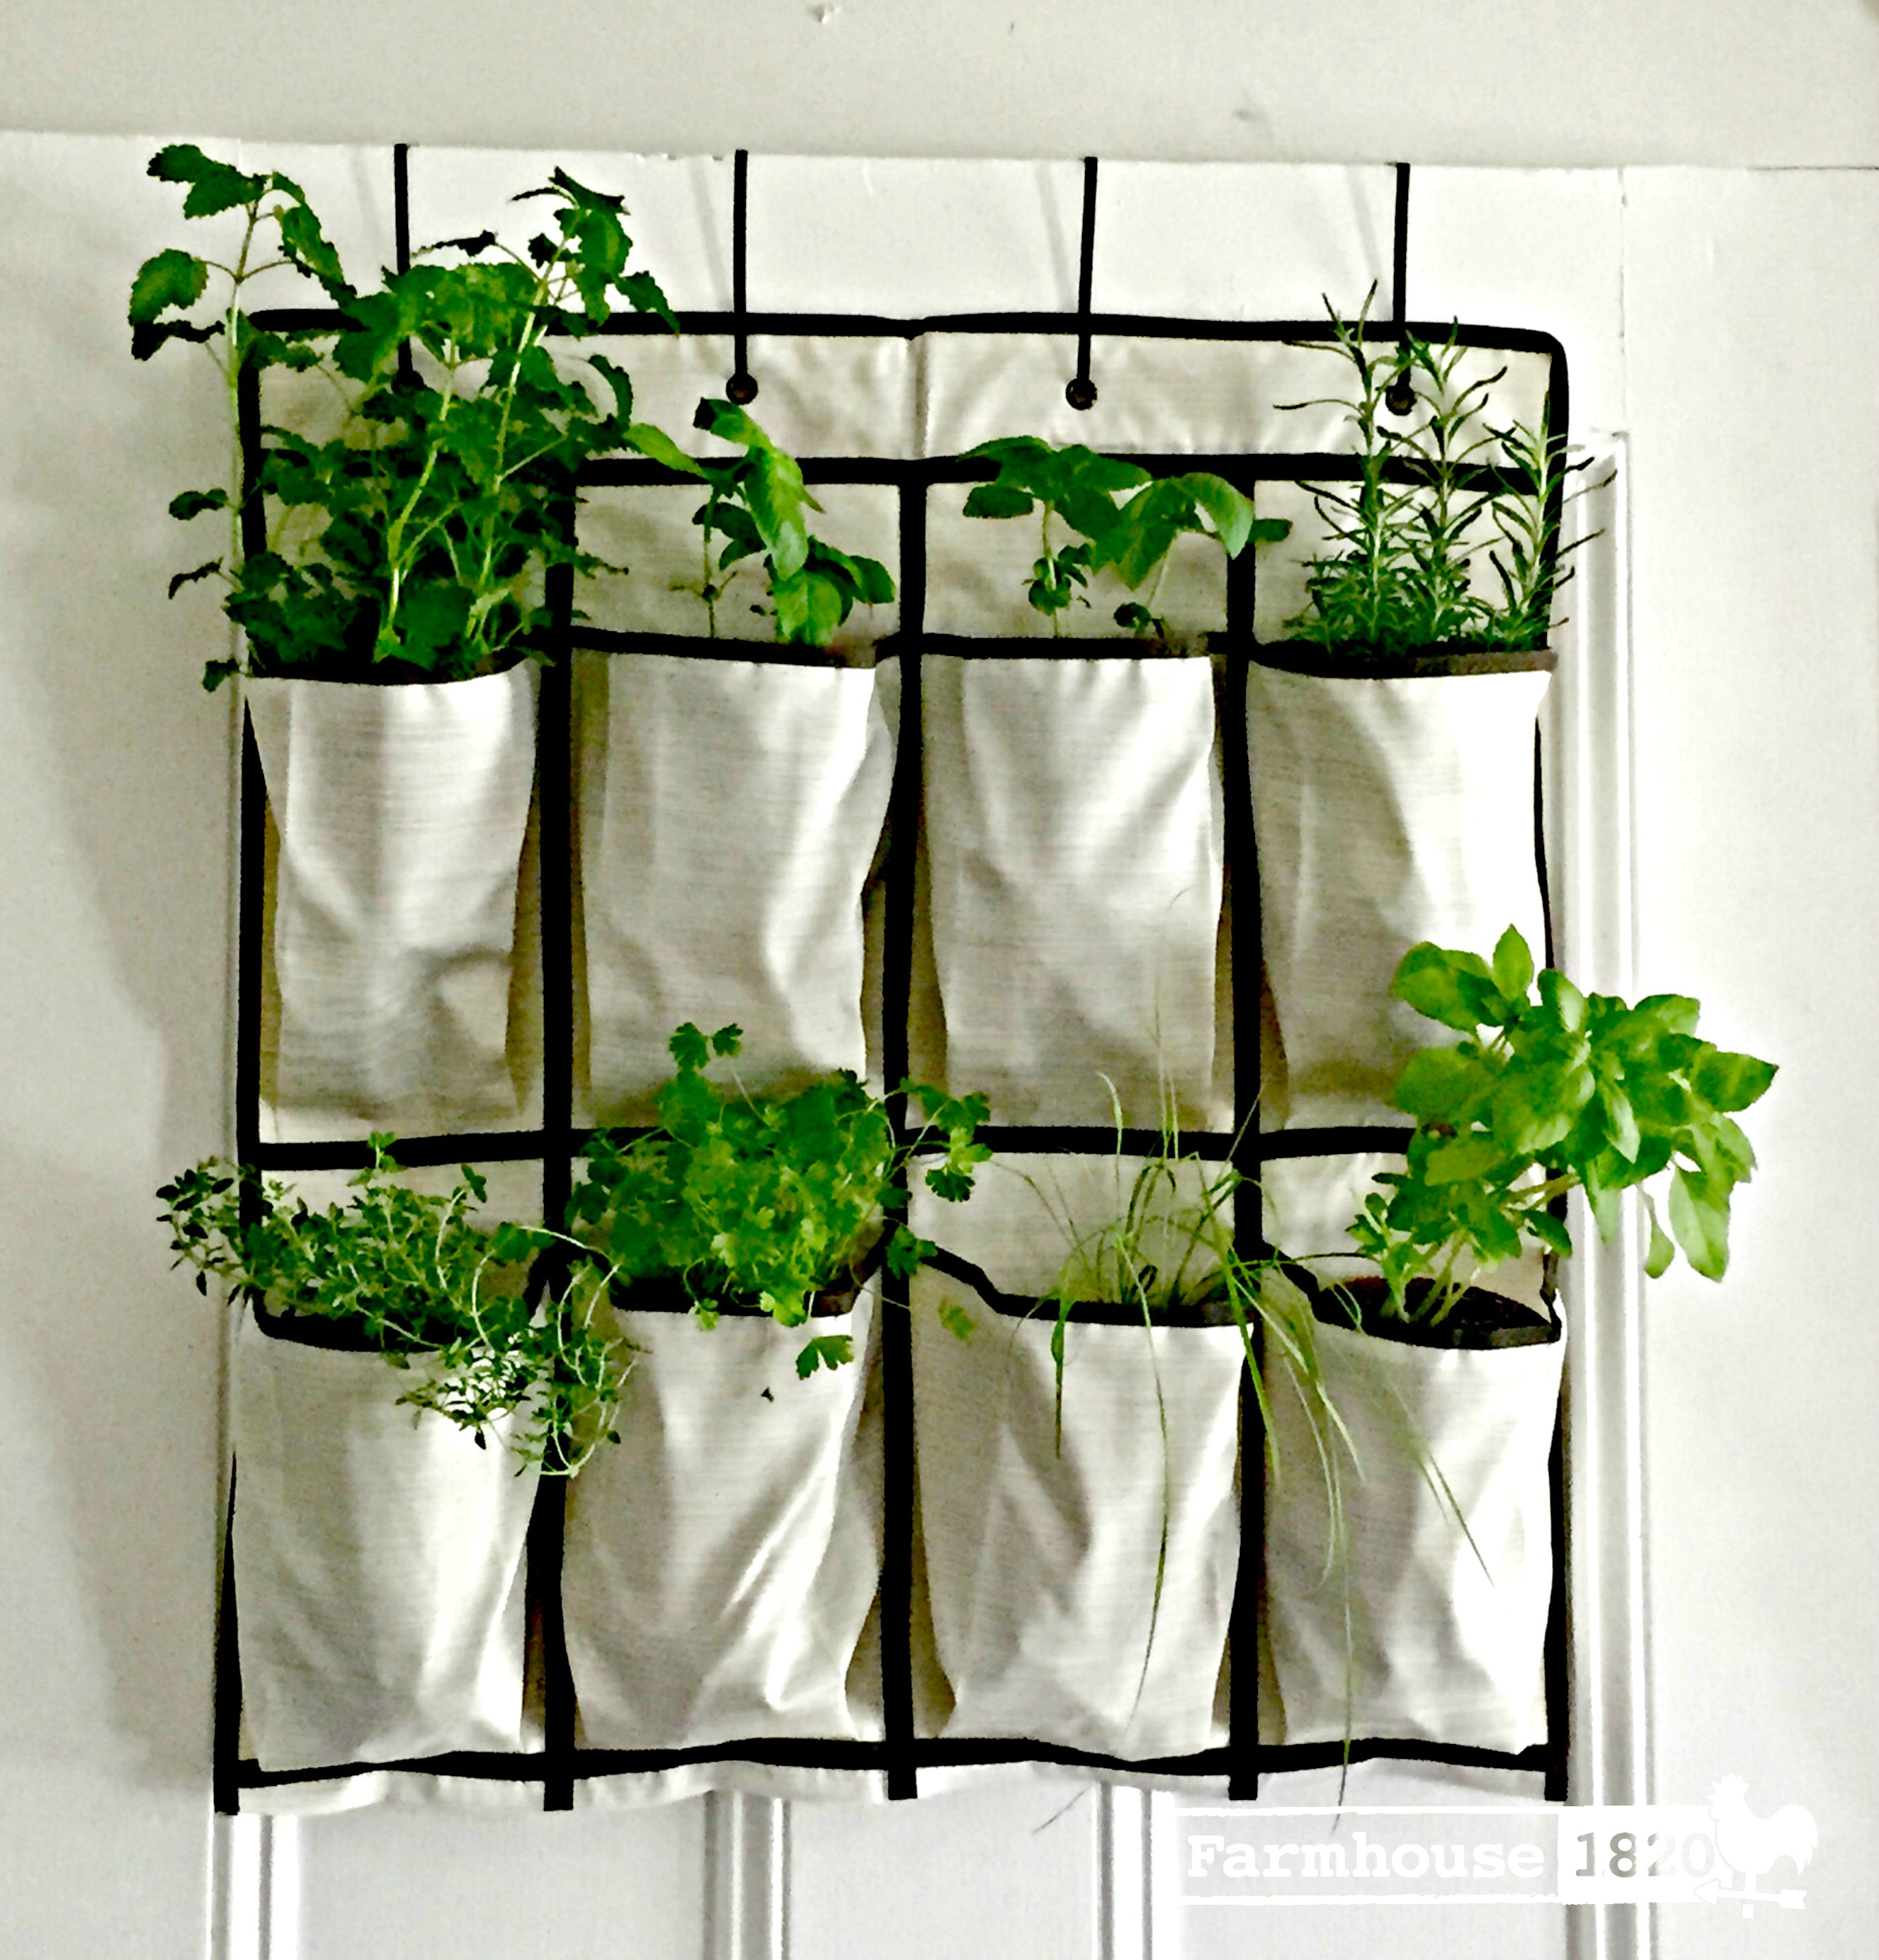 A Super Quick & Easy DIY Vertical Hanging Garden